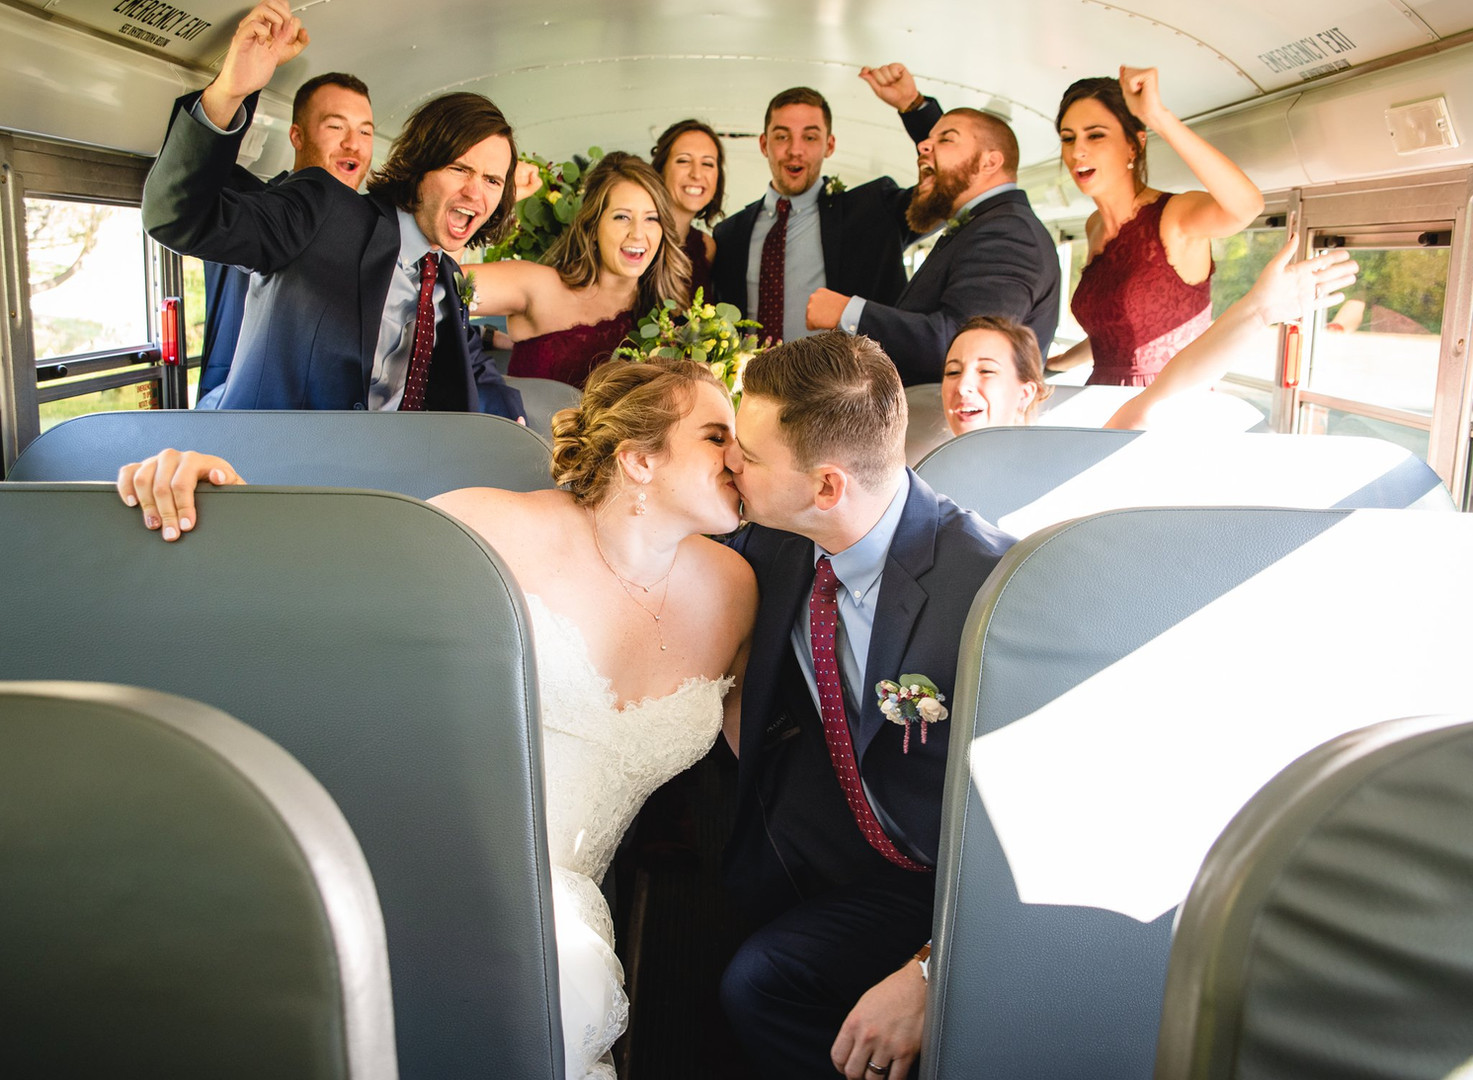 wedding party in school bus by New England wedding photographer